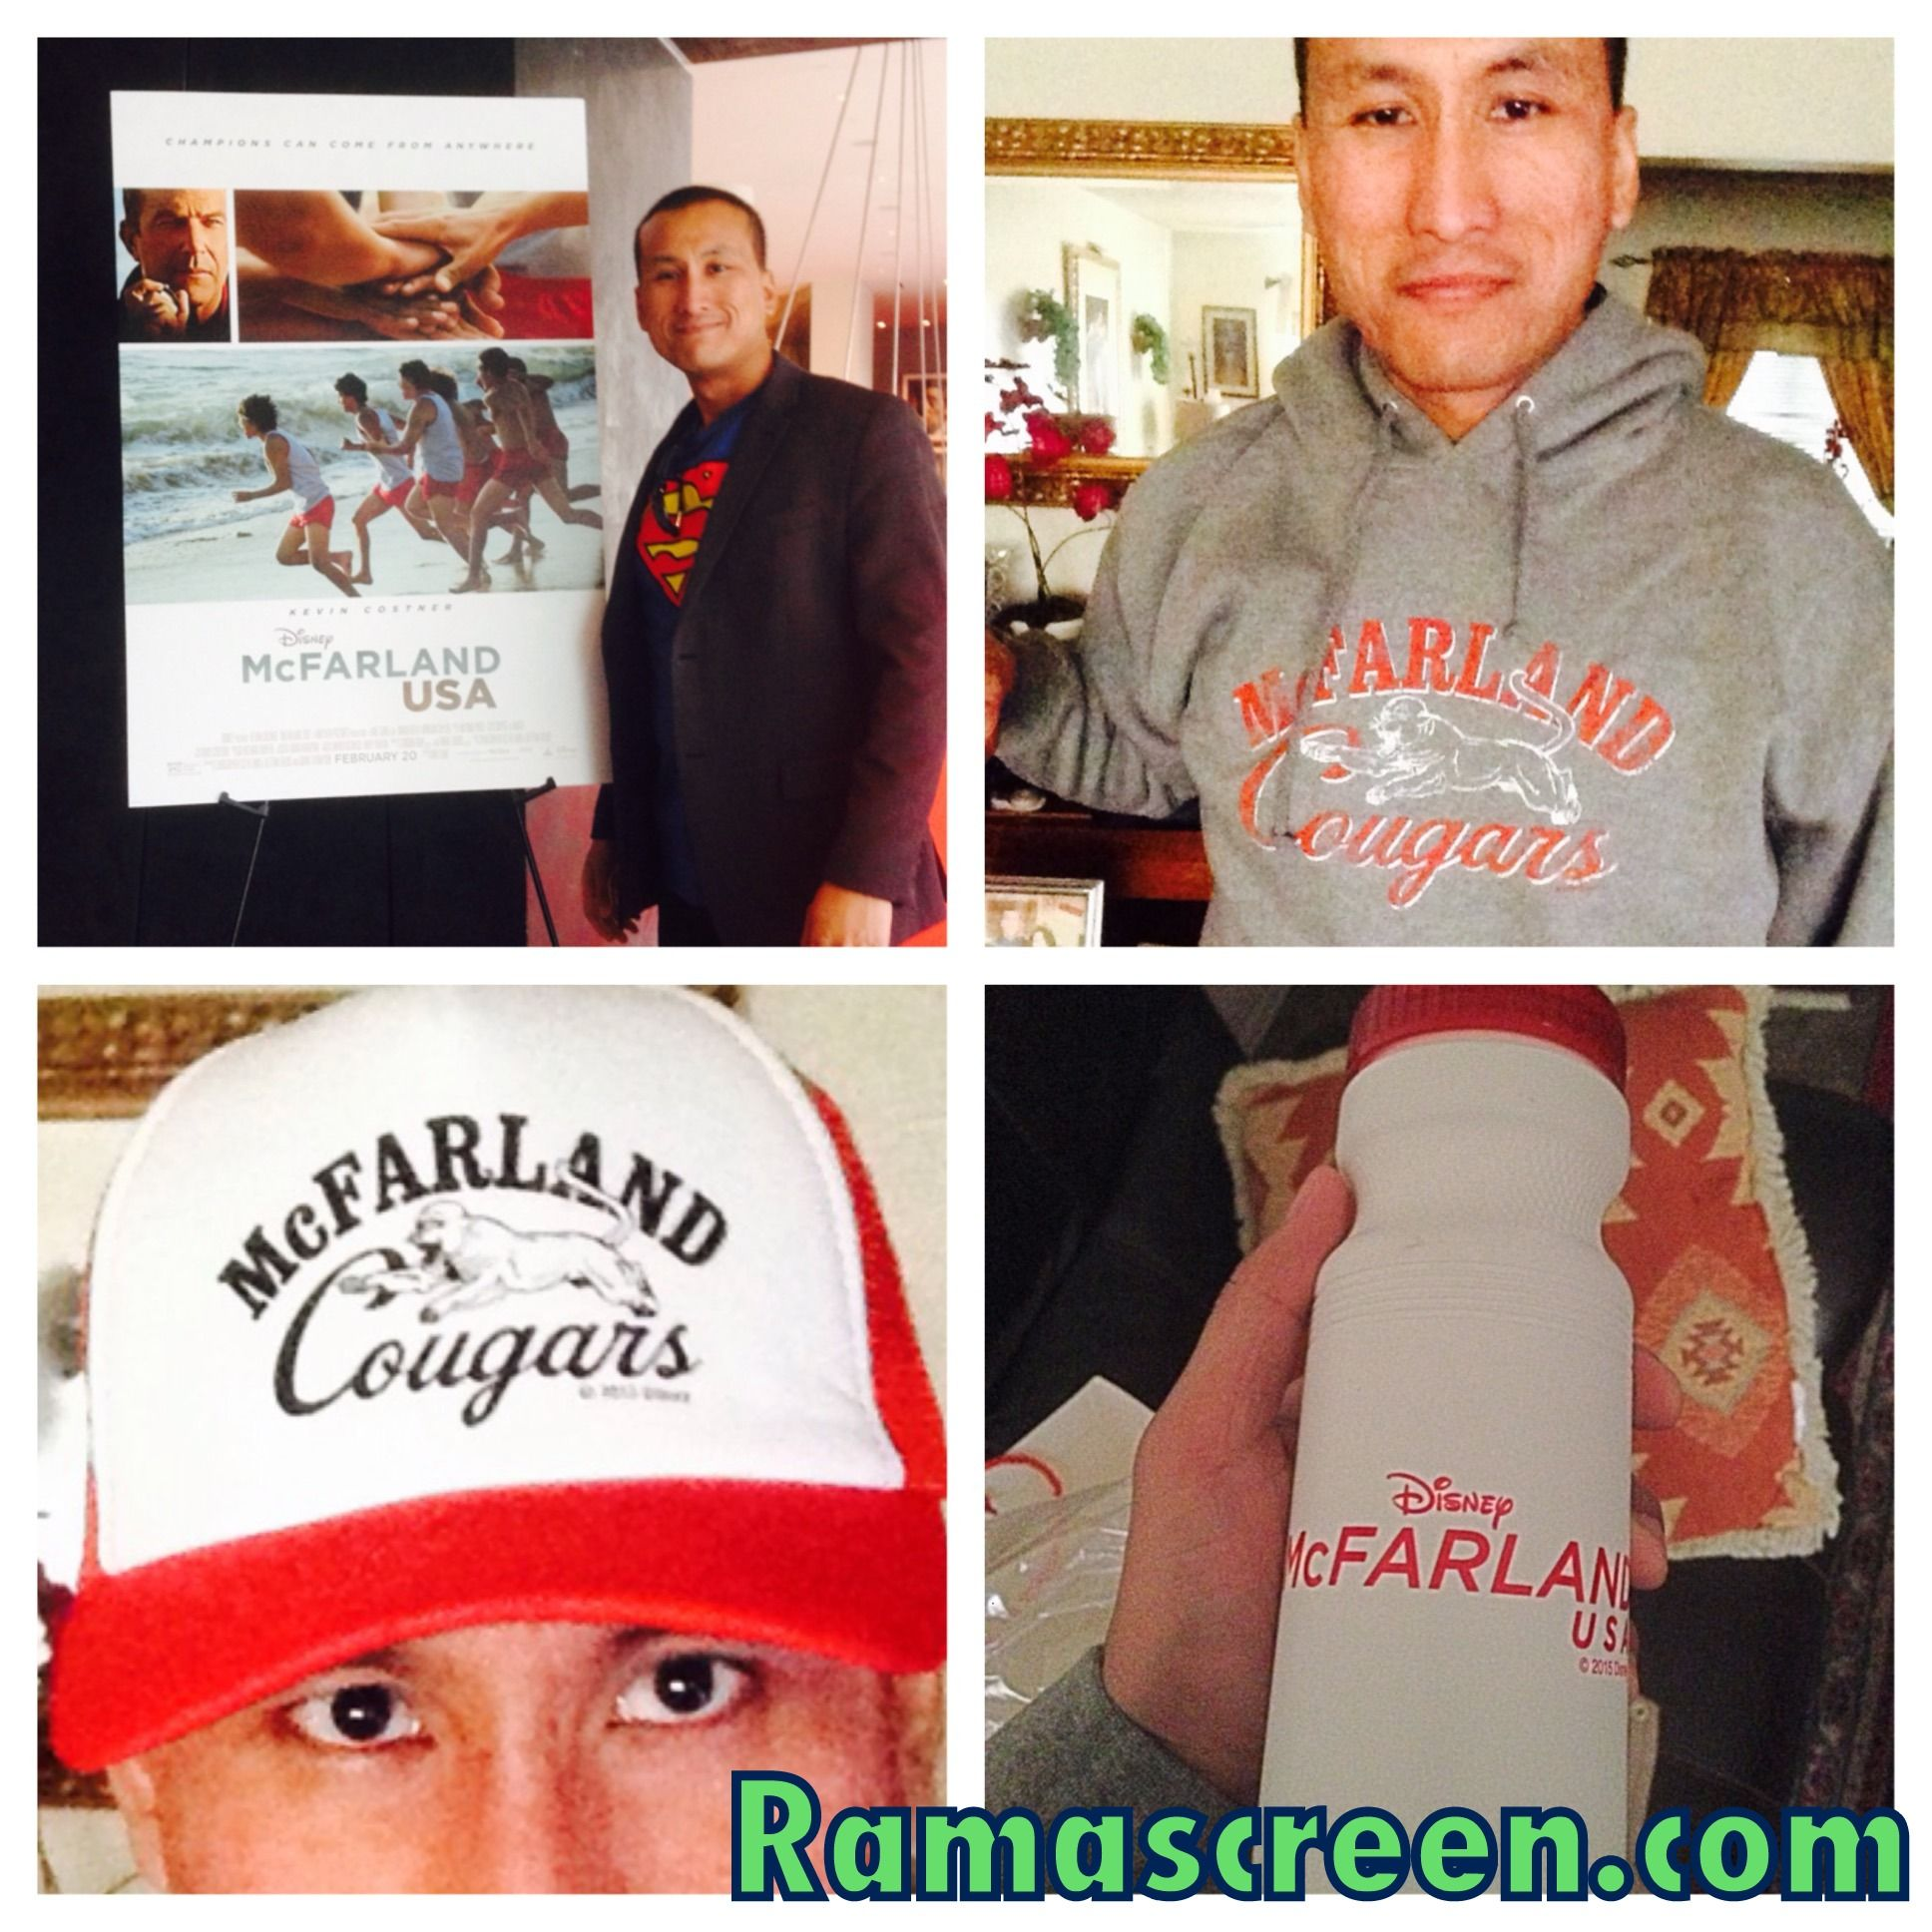 Look at these freebies (Sweatshirt, hat, CDs) that #Disney gave me at #McFarlandUSA press junket :)  Please LIKE my Facebook page at Facebook.com/ramascreen